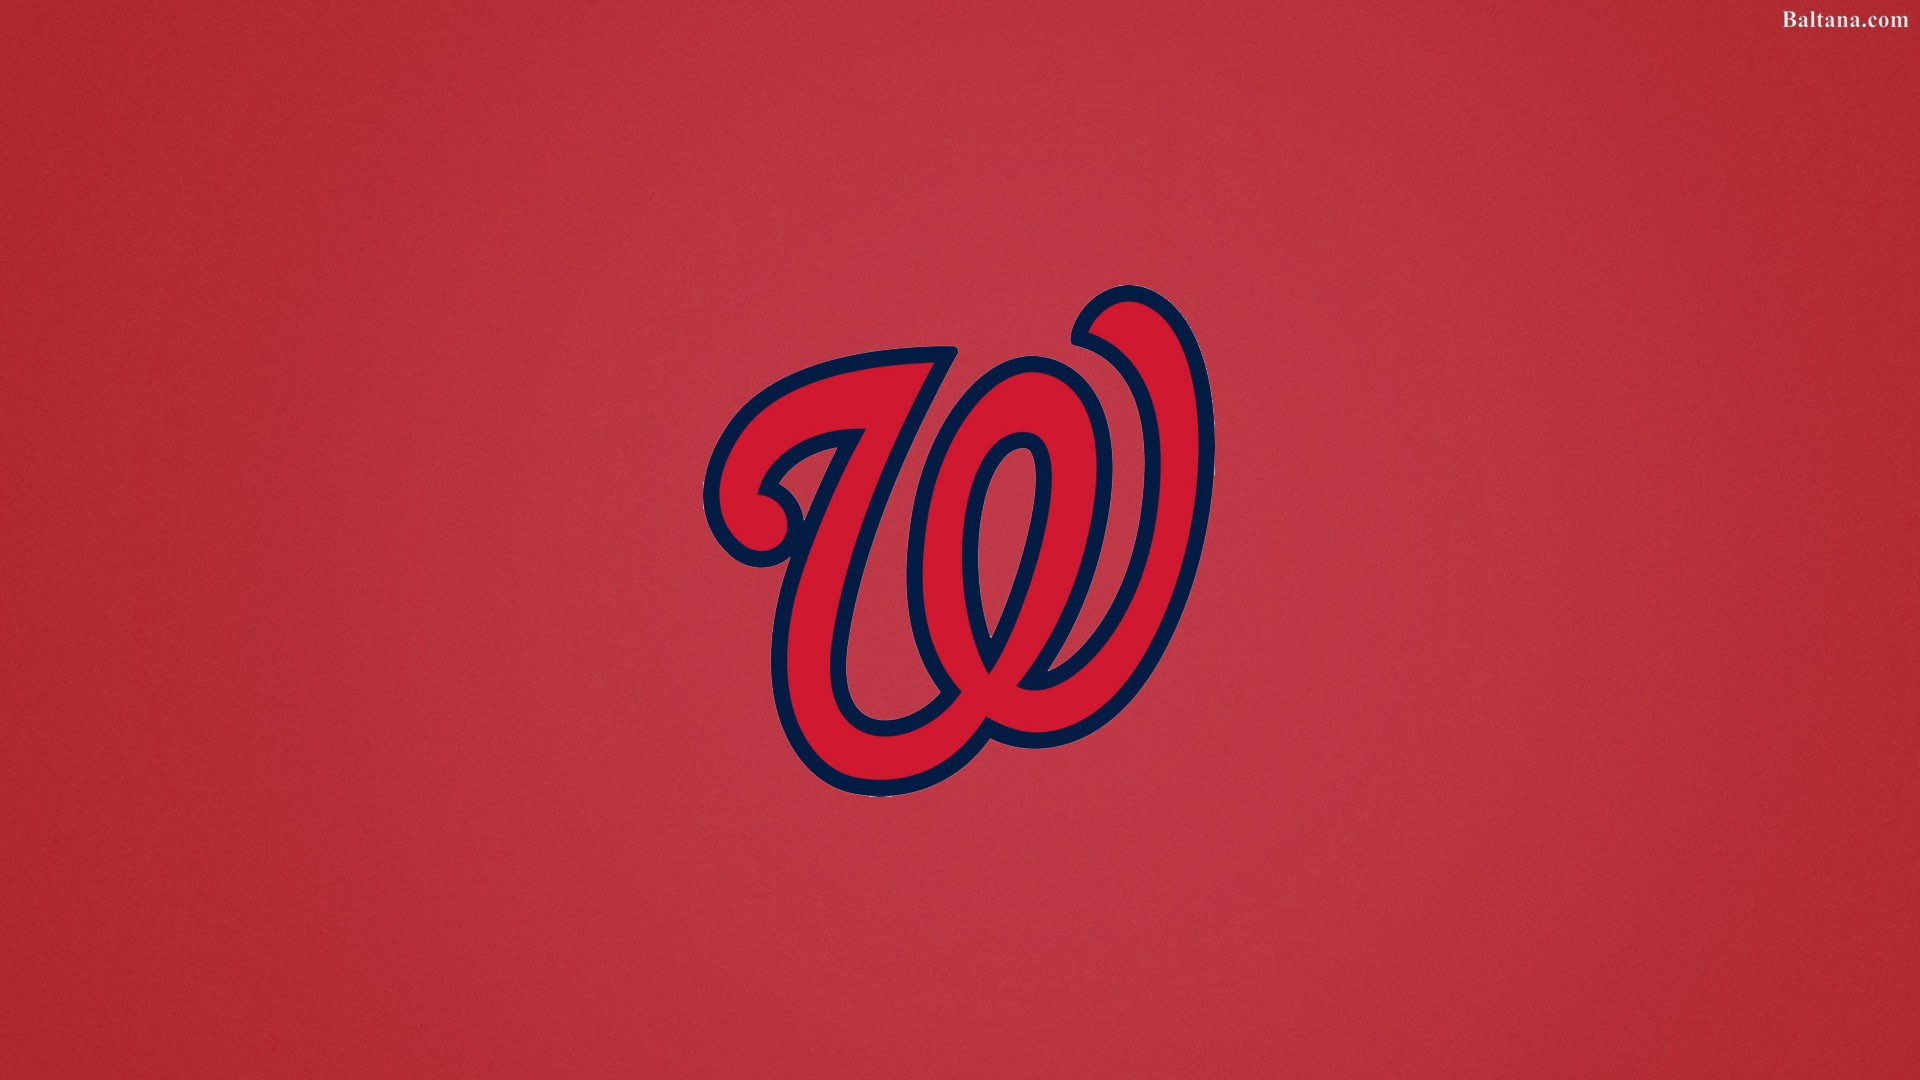 Washington Nationals Background Wallpaper 33389   Baltana 1920x1080